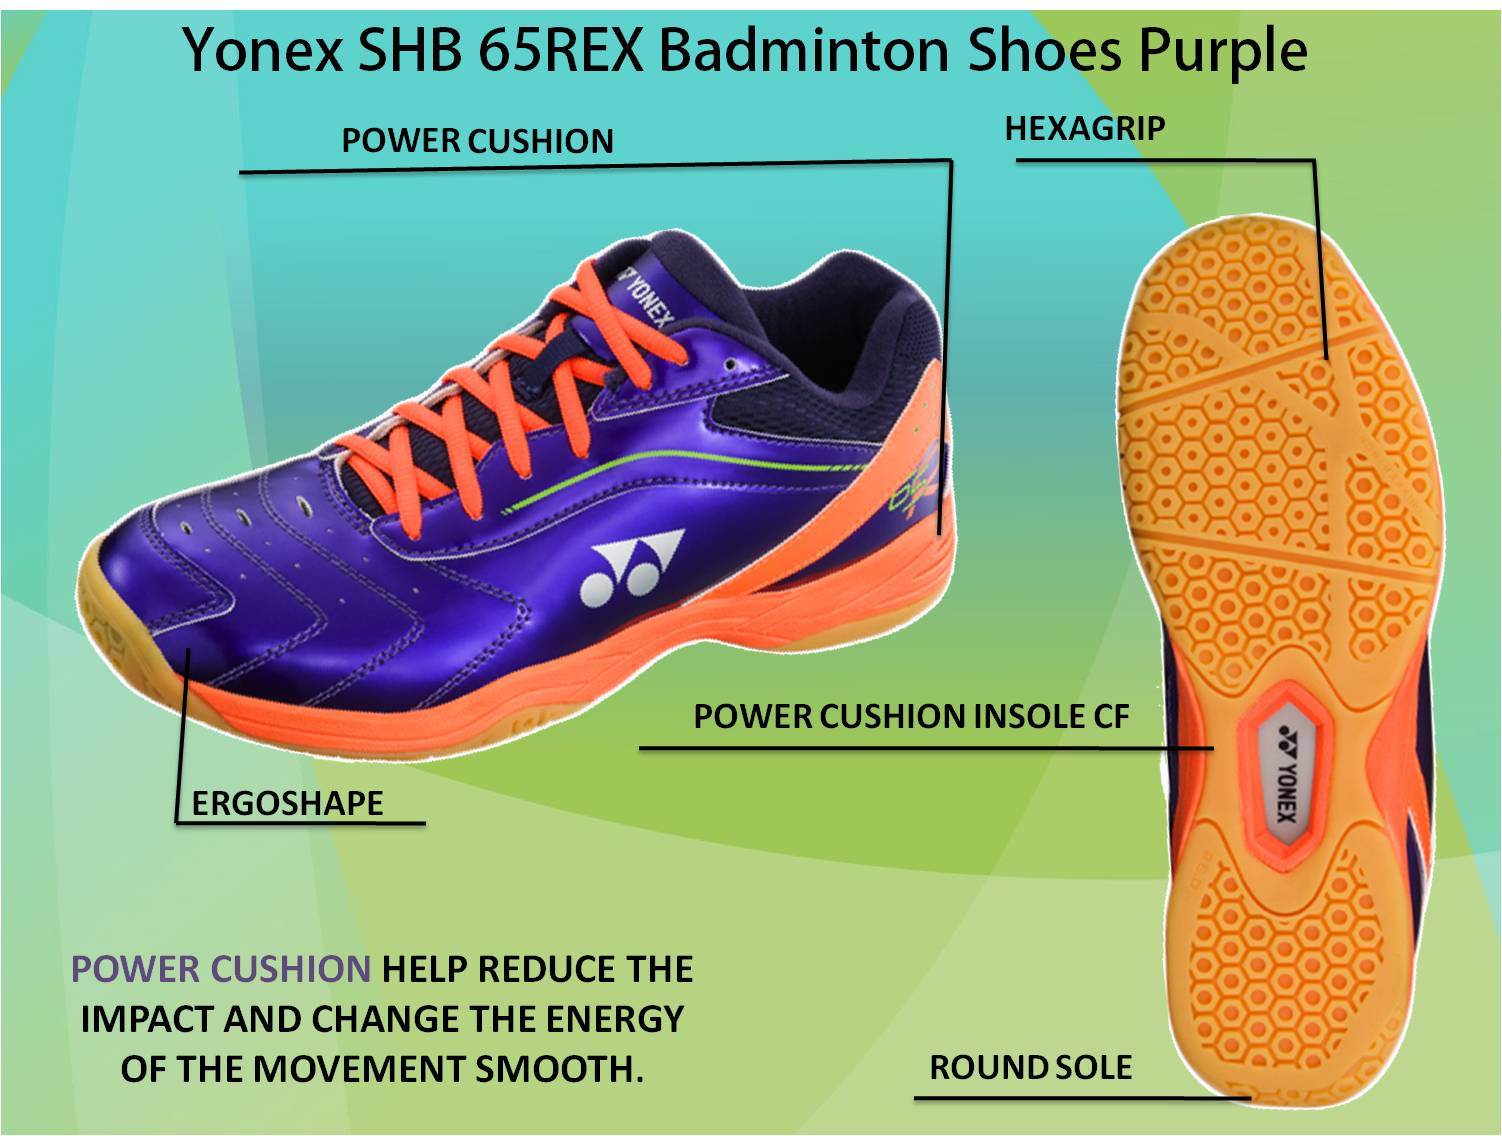 Yonex SHB 65 REX Badminton Shoes Purple